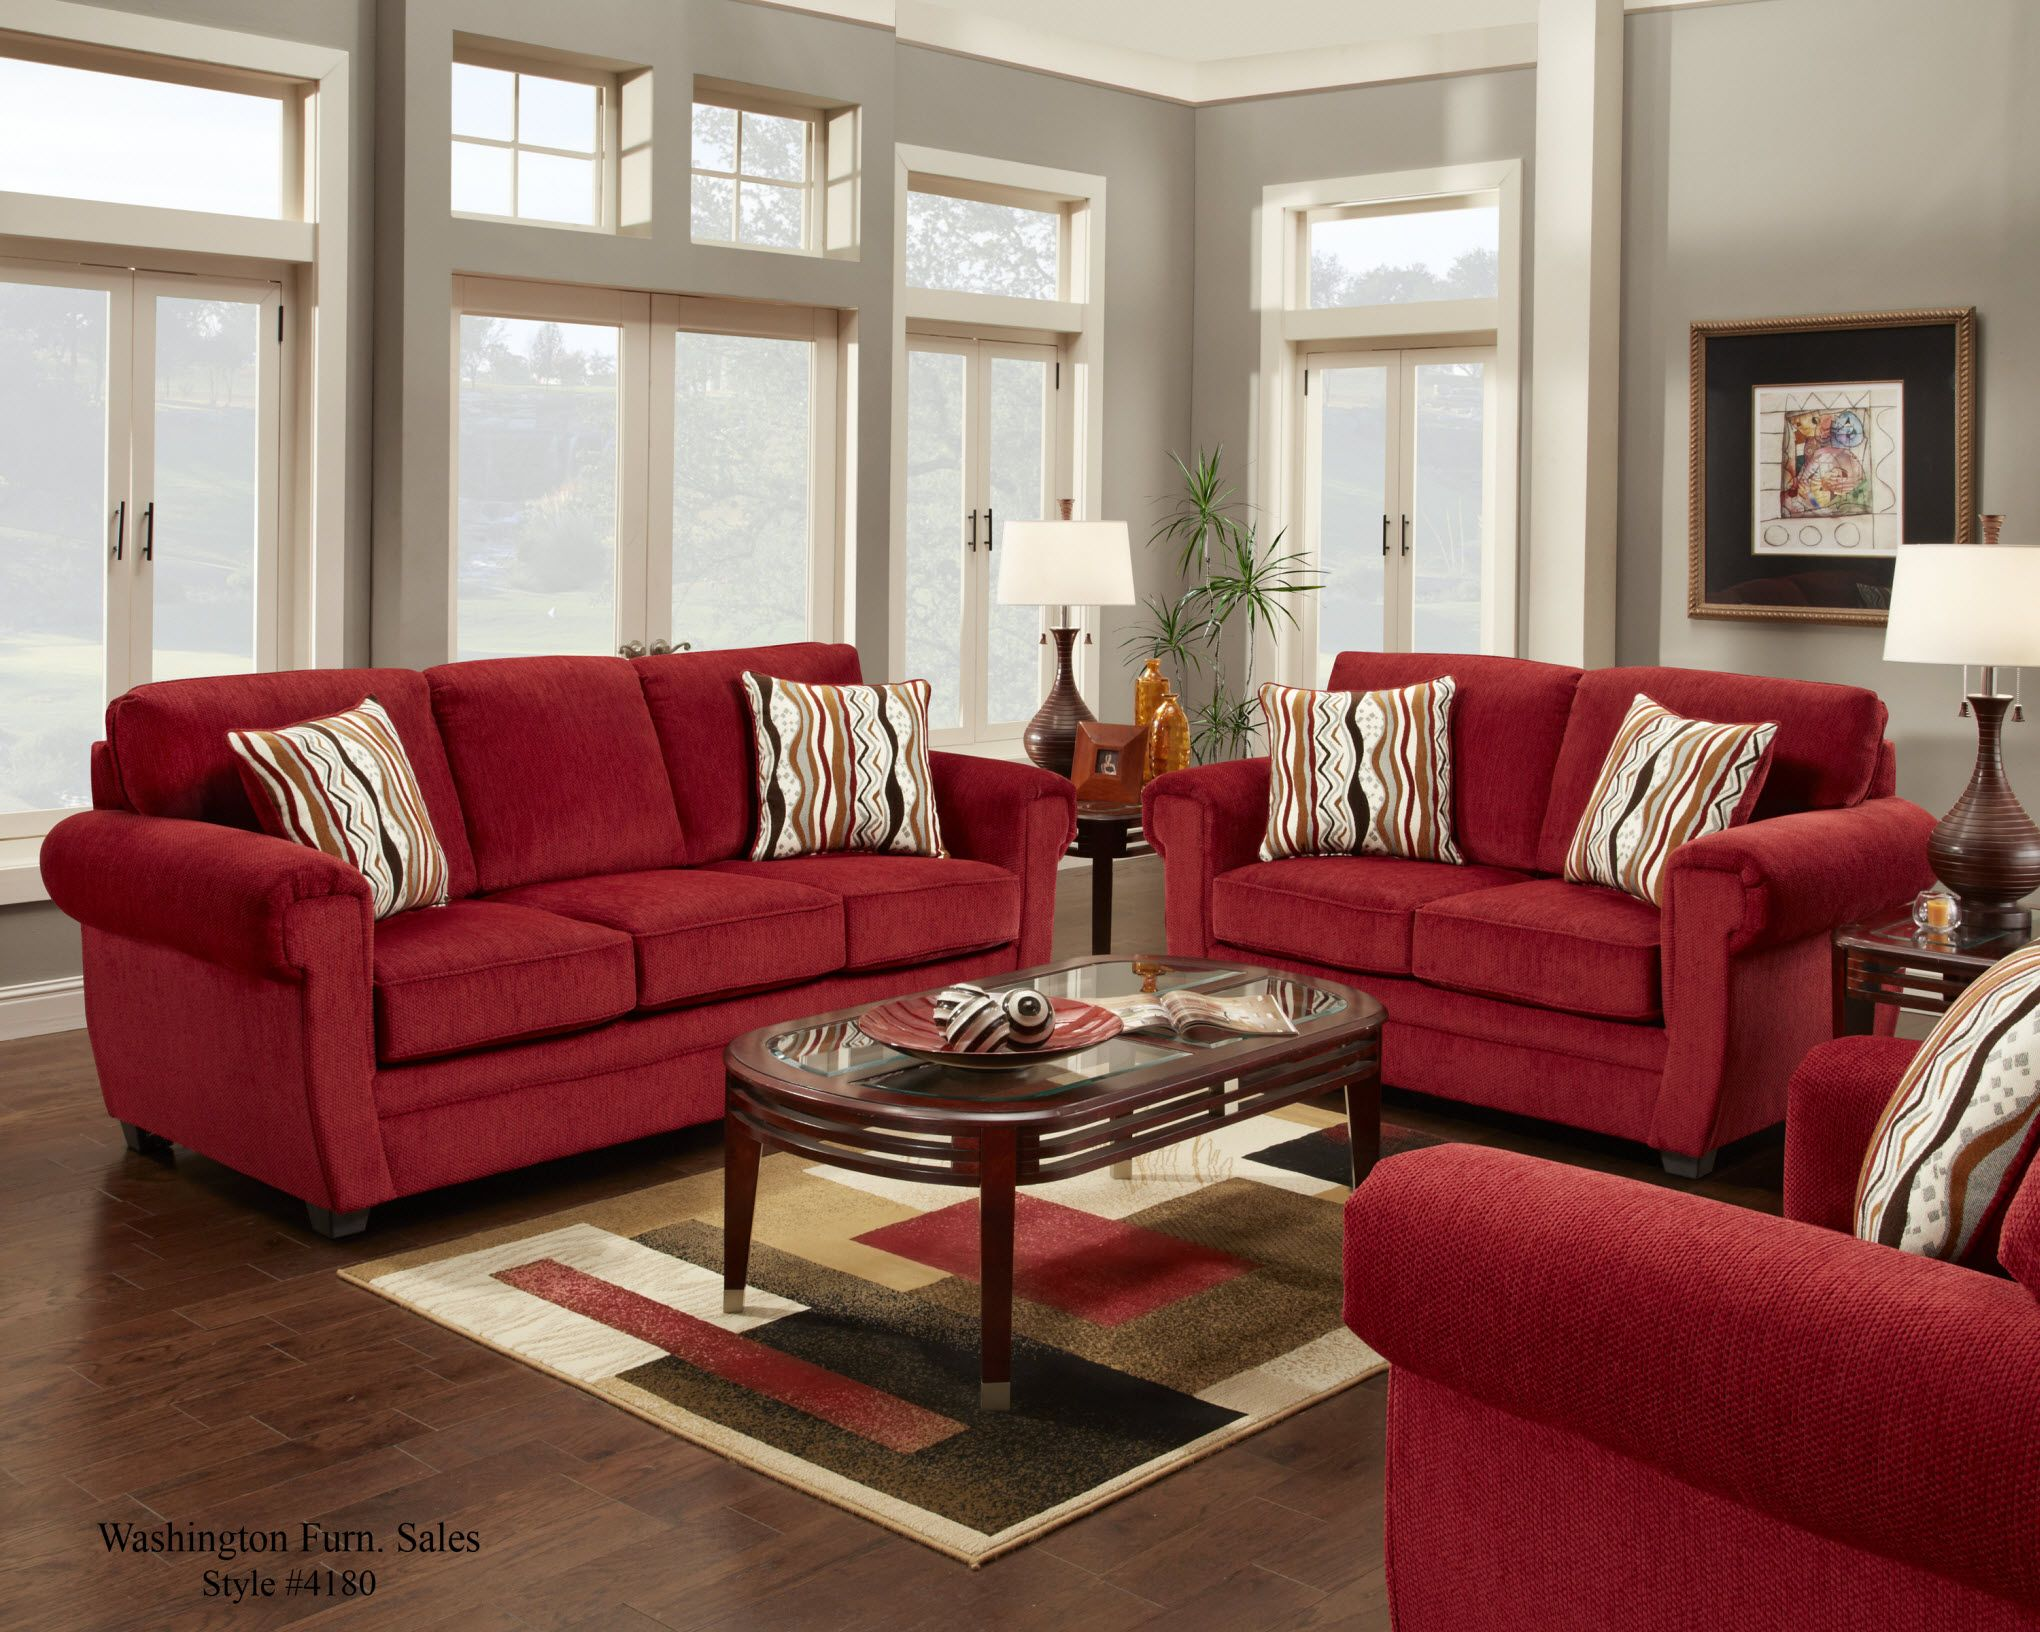 Red Room Decor Ideas 4180 Washington Samson Red Sofa And Loveseat Www